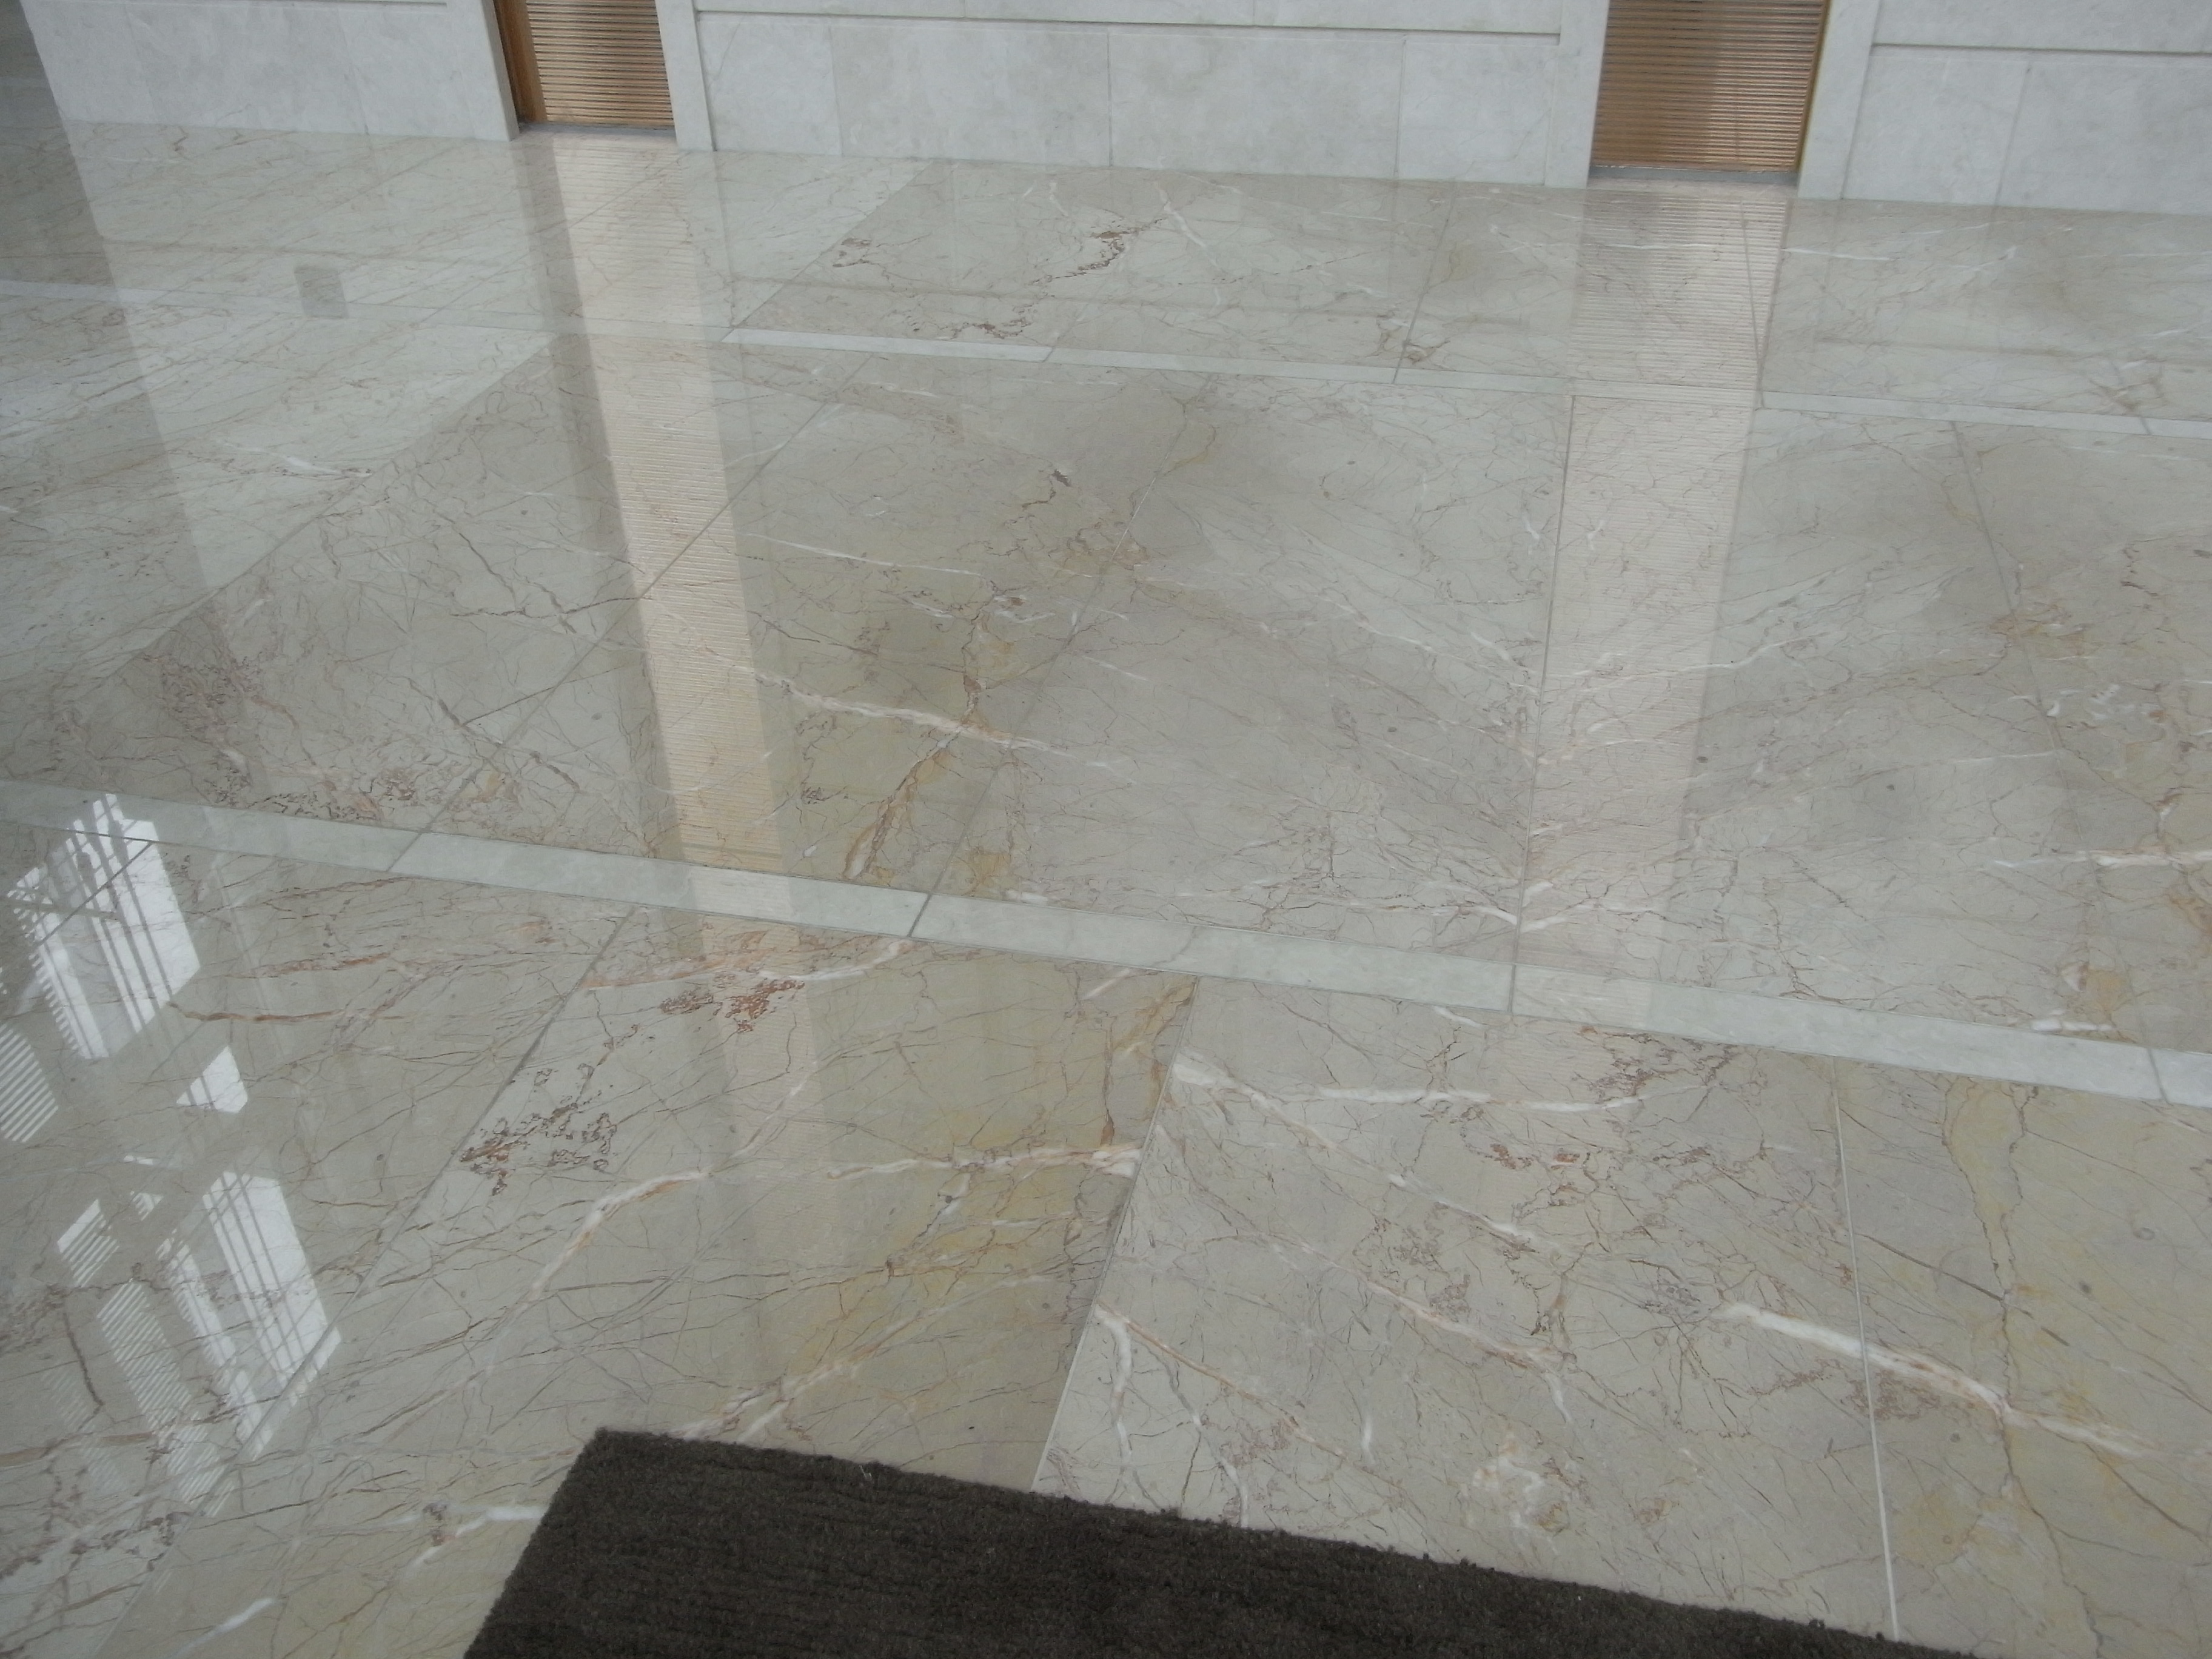 Marbles Flooring Materials : File hk kln west yau ma tei 天璽 the cullinan clubhouse